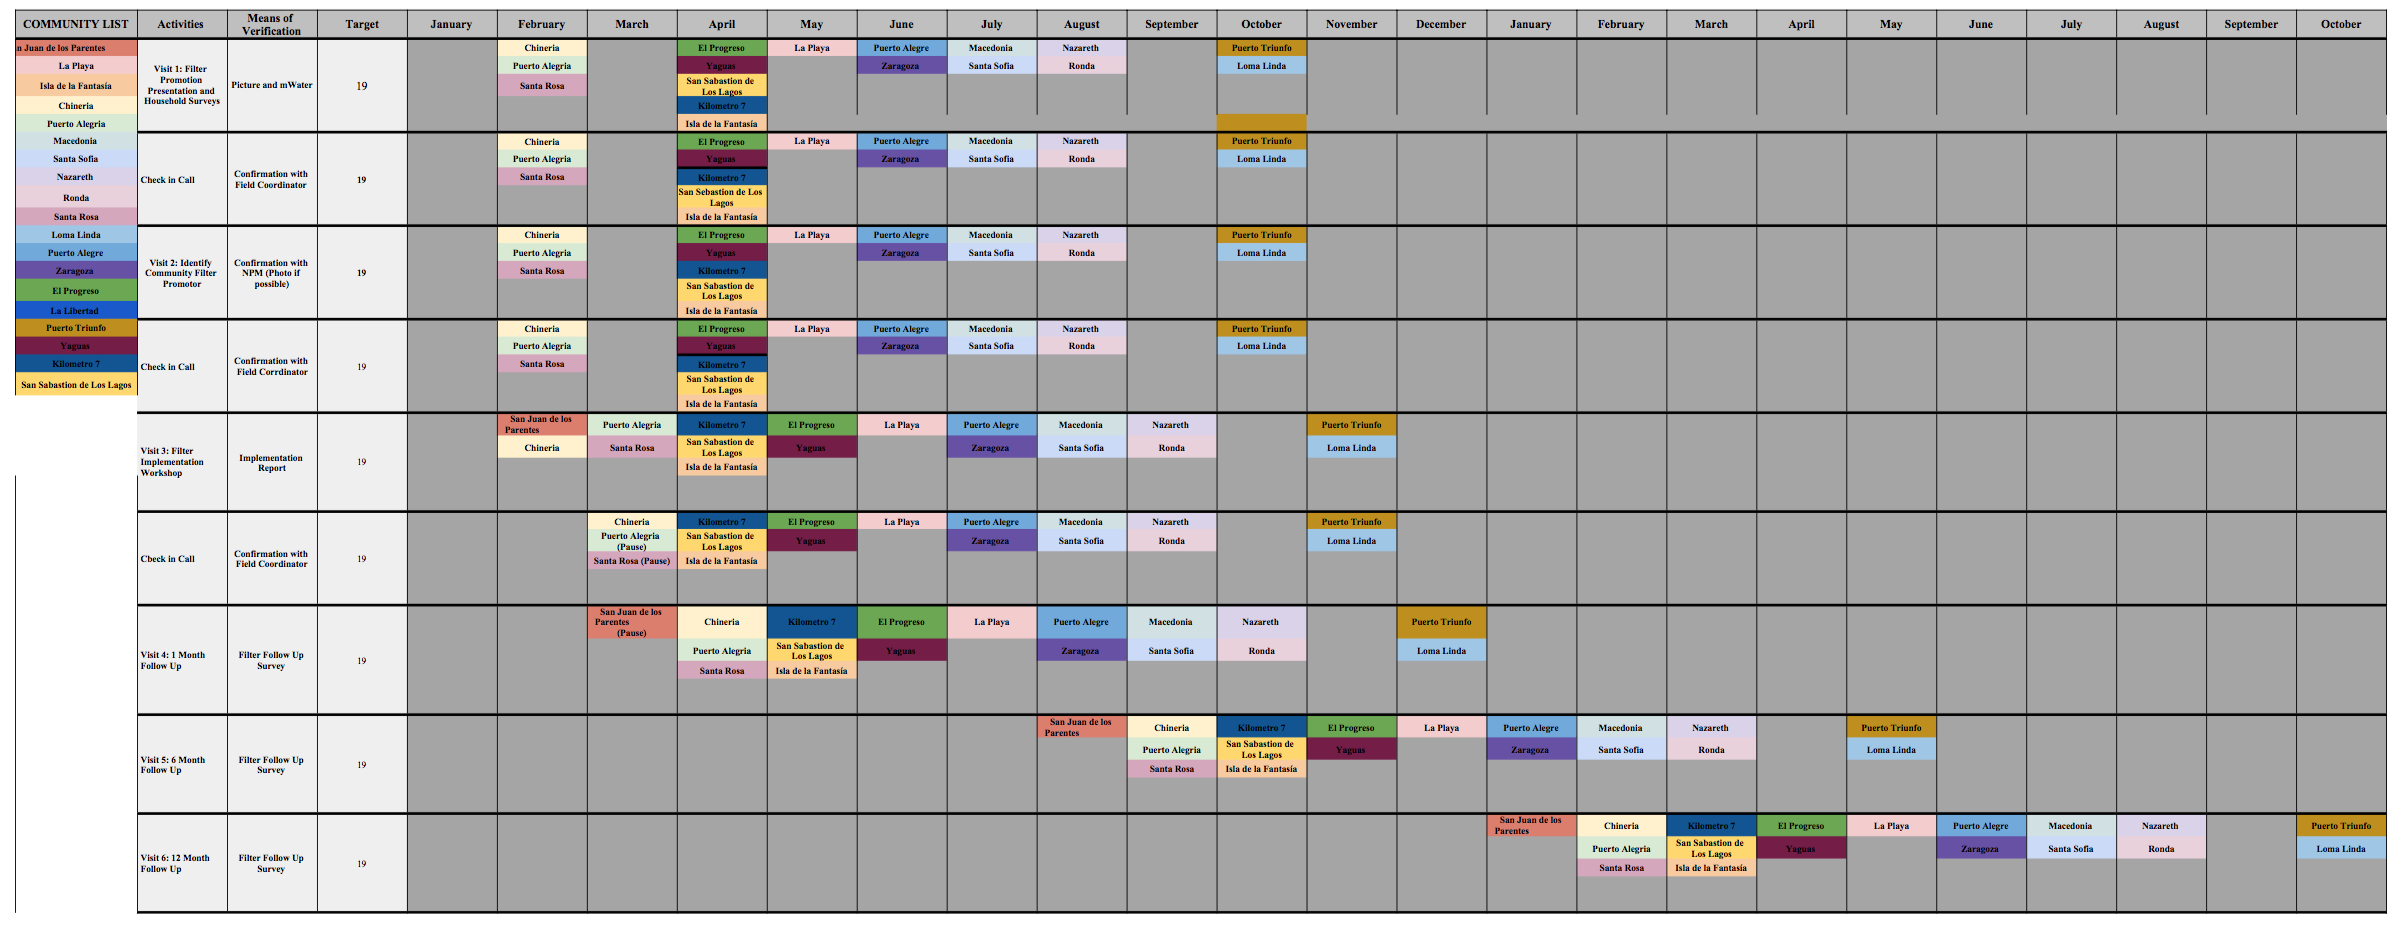 Current Gantt Chart for communities in the Amazon